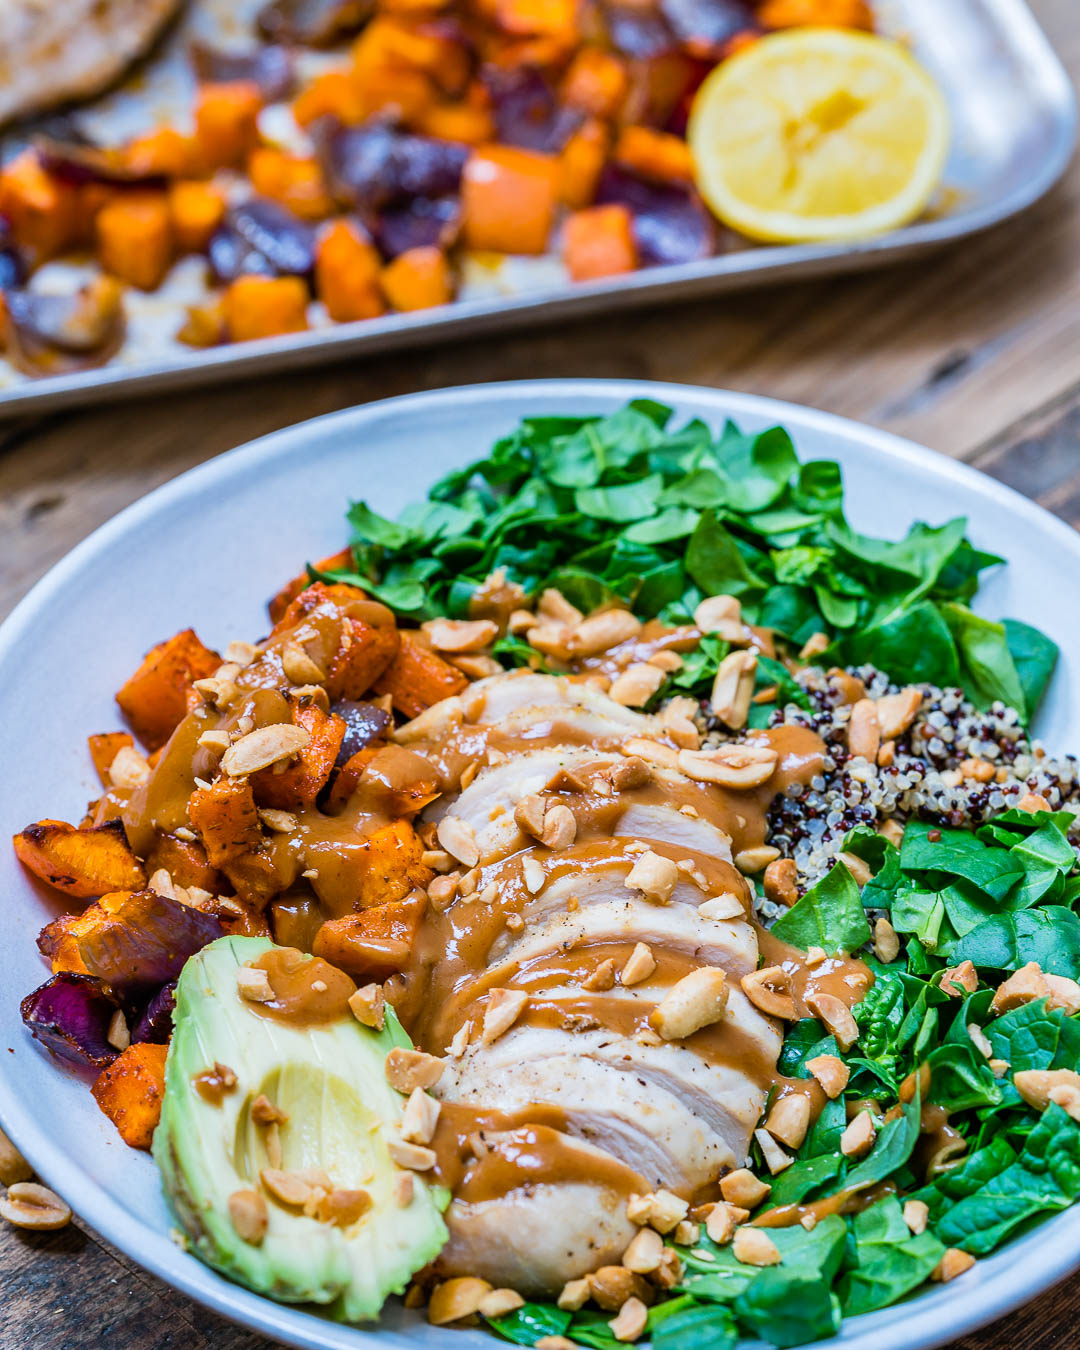 Healthy chicken salad recipe with quinoa and roasted veggies-11